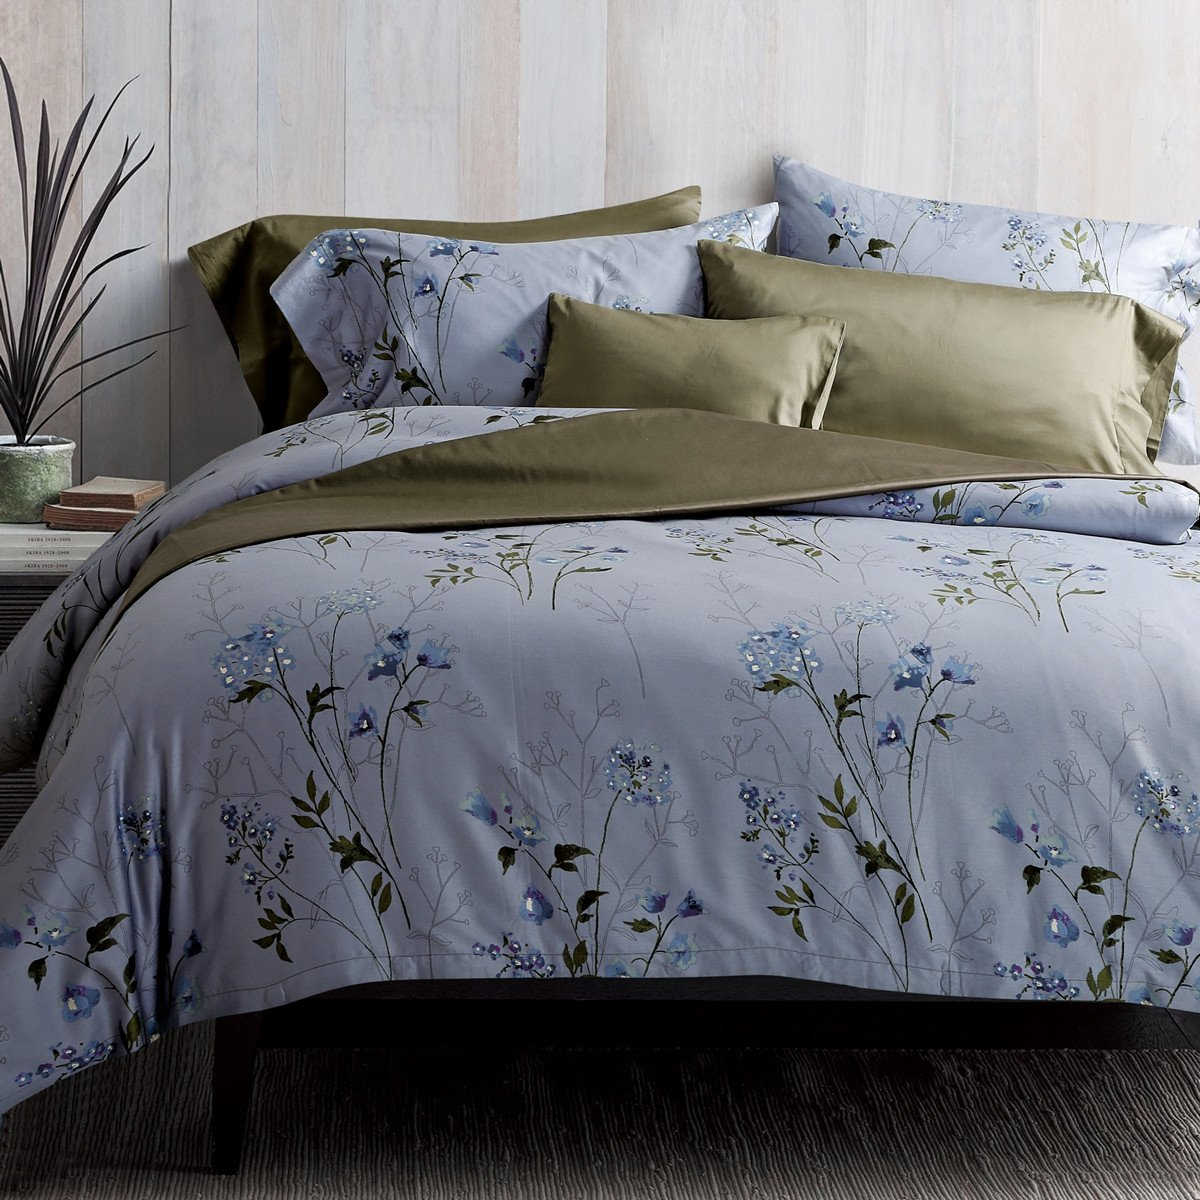 Vintage Botanical Flower Print Bedding